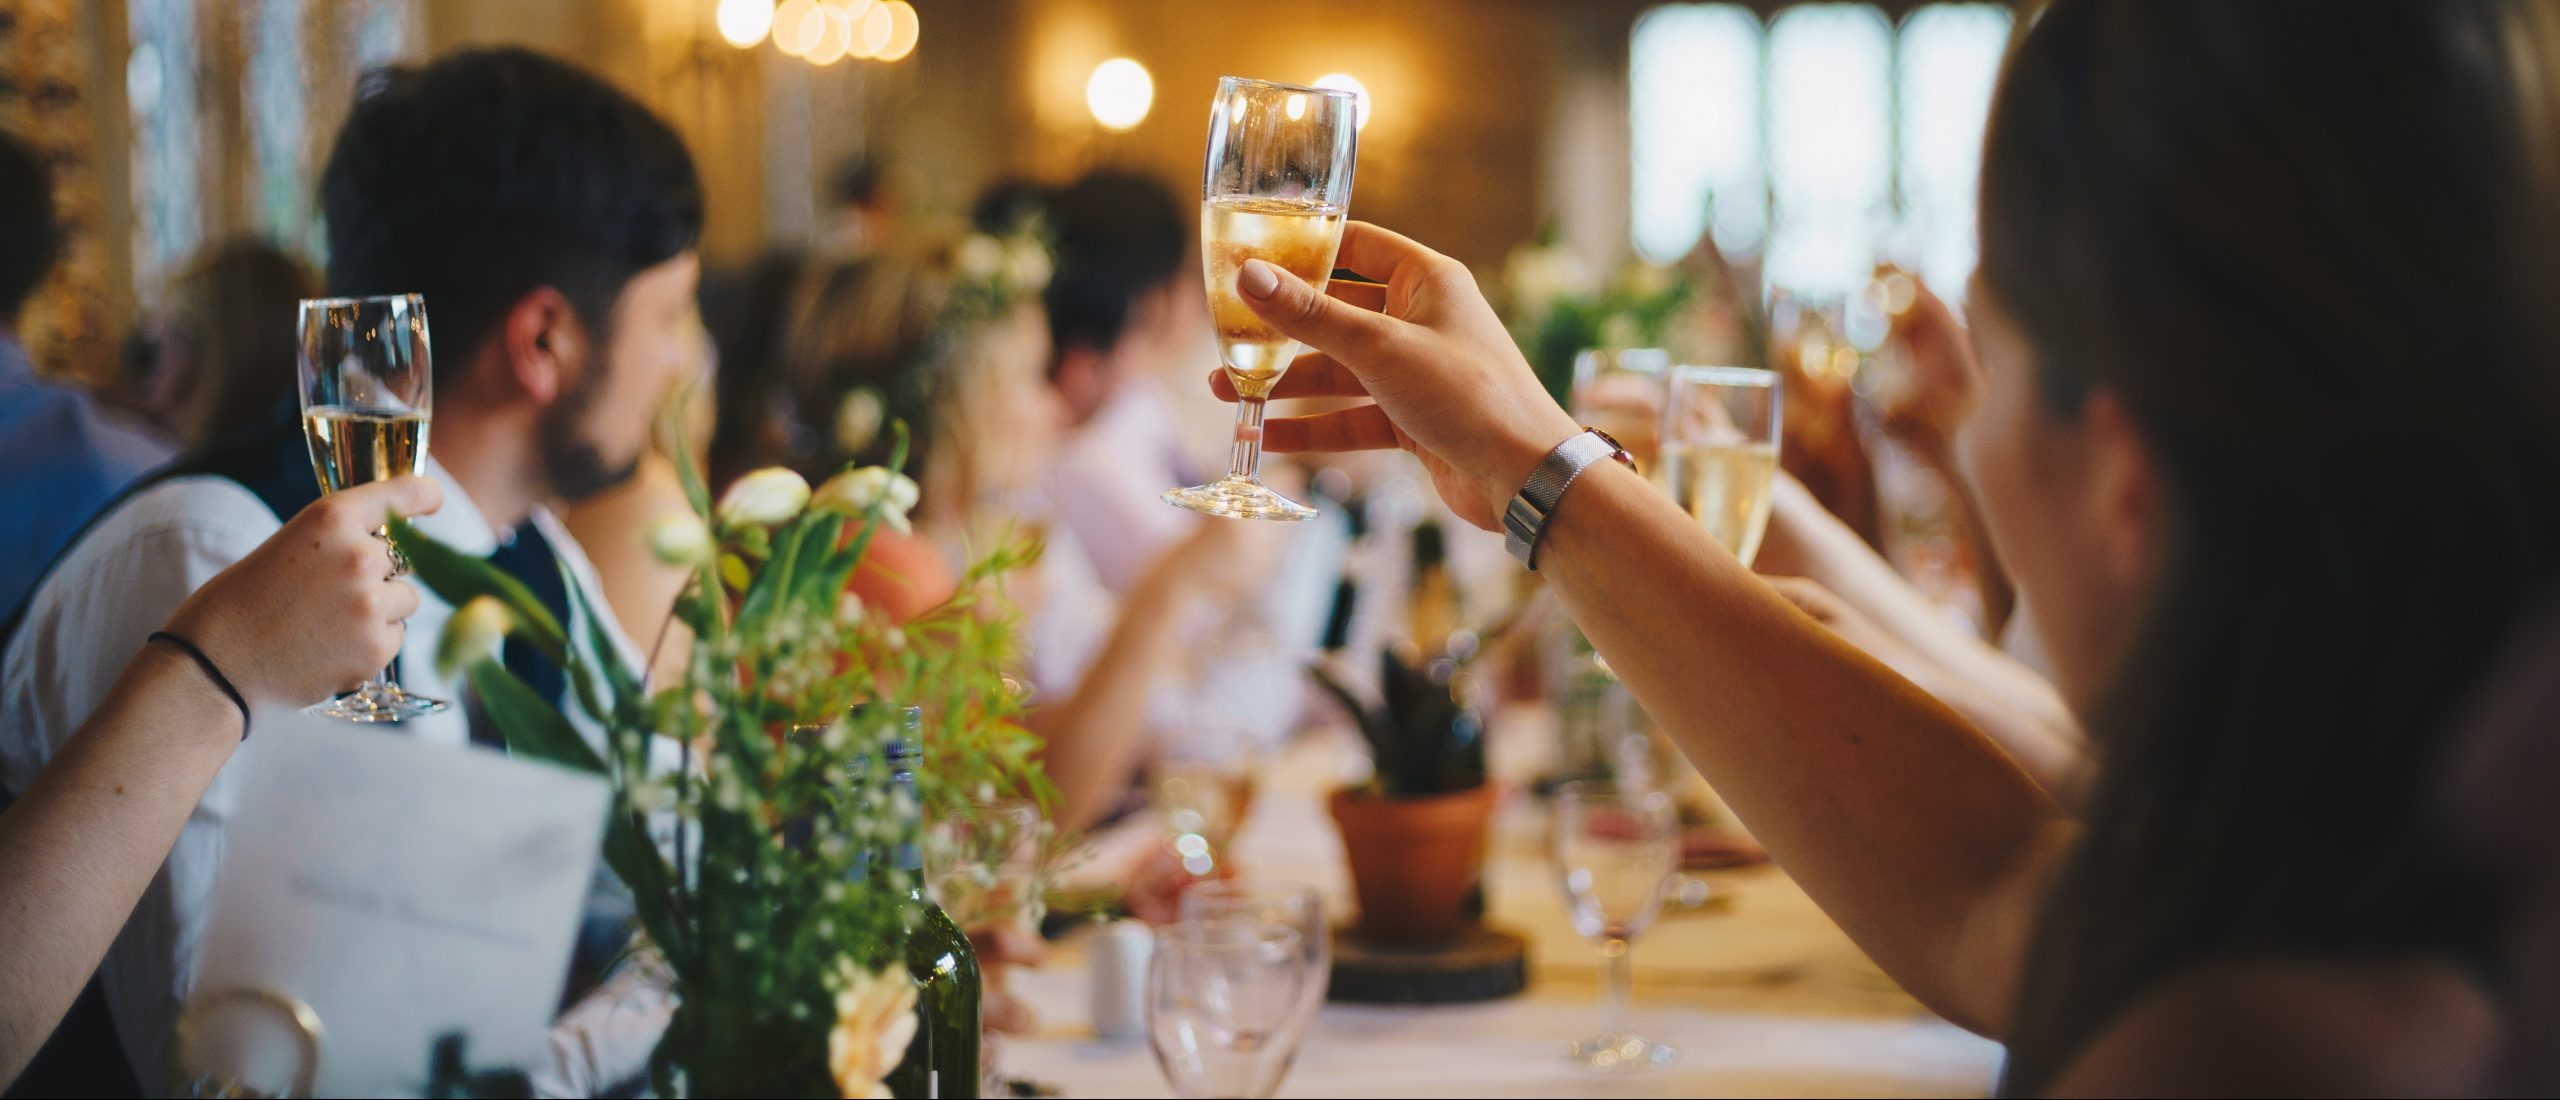 guests toasting at a wedding